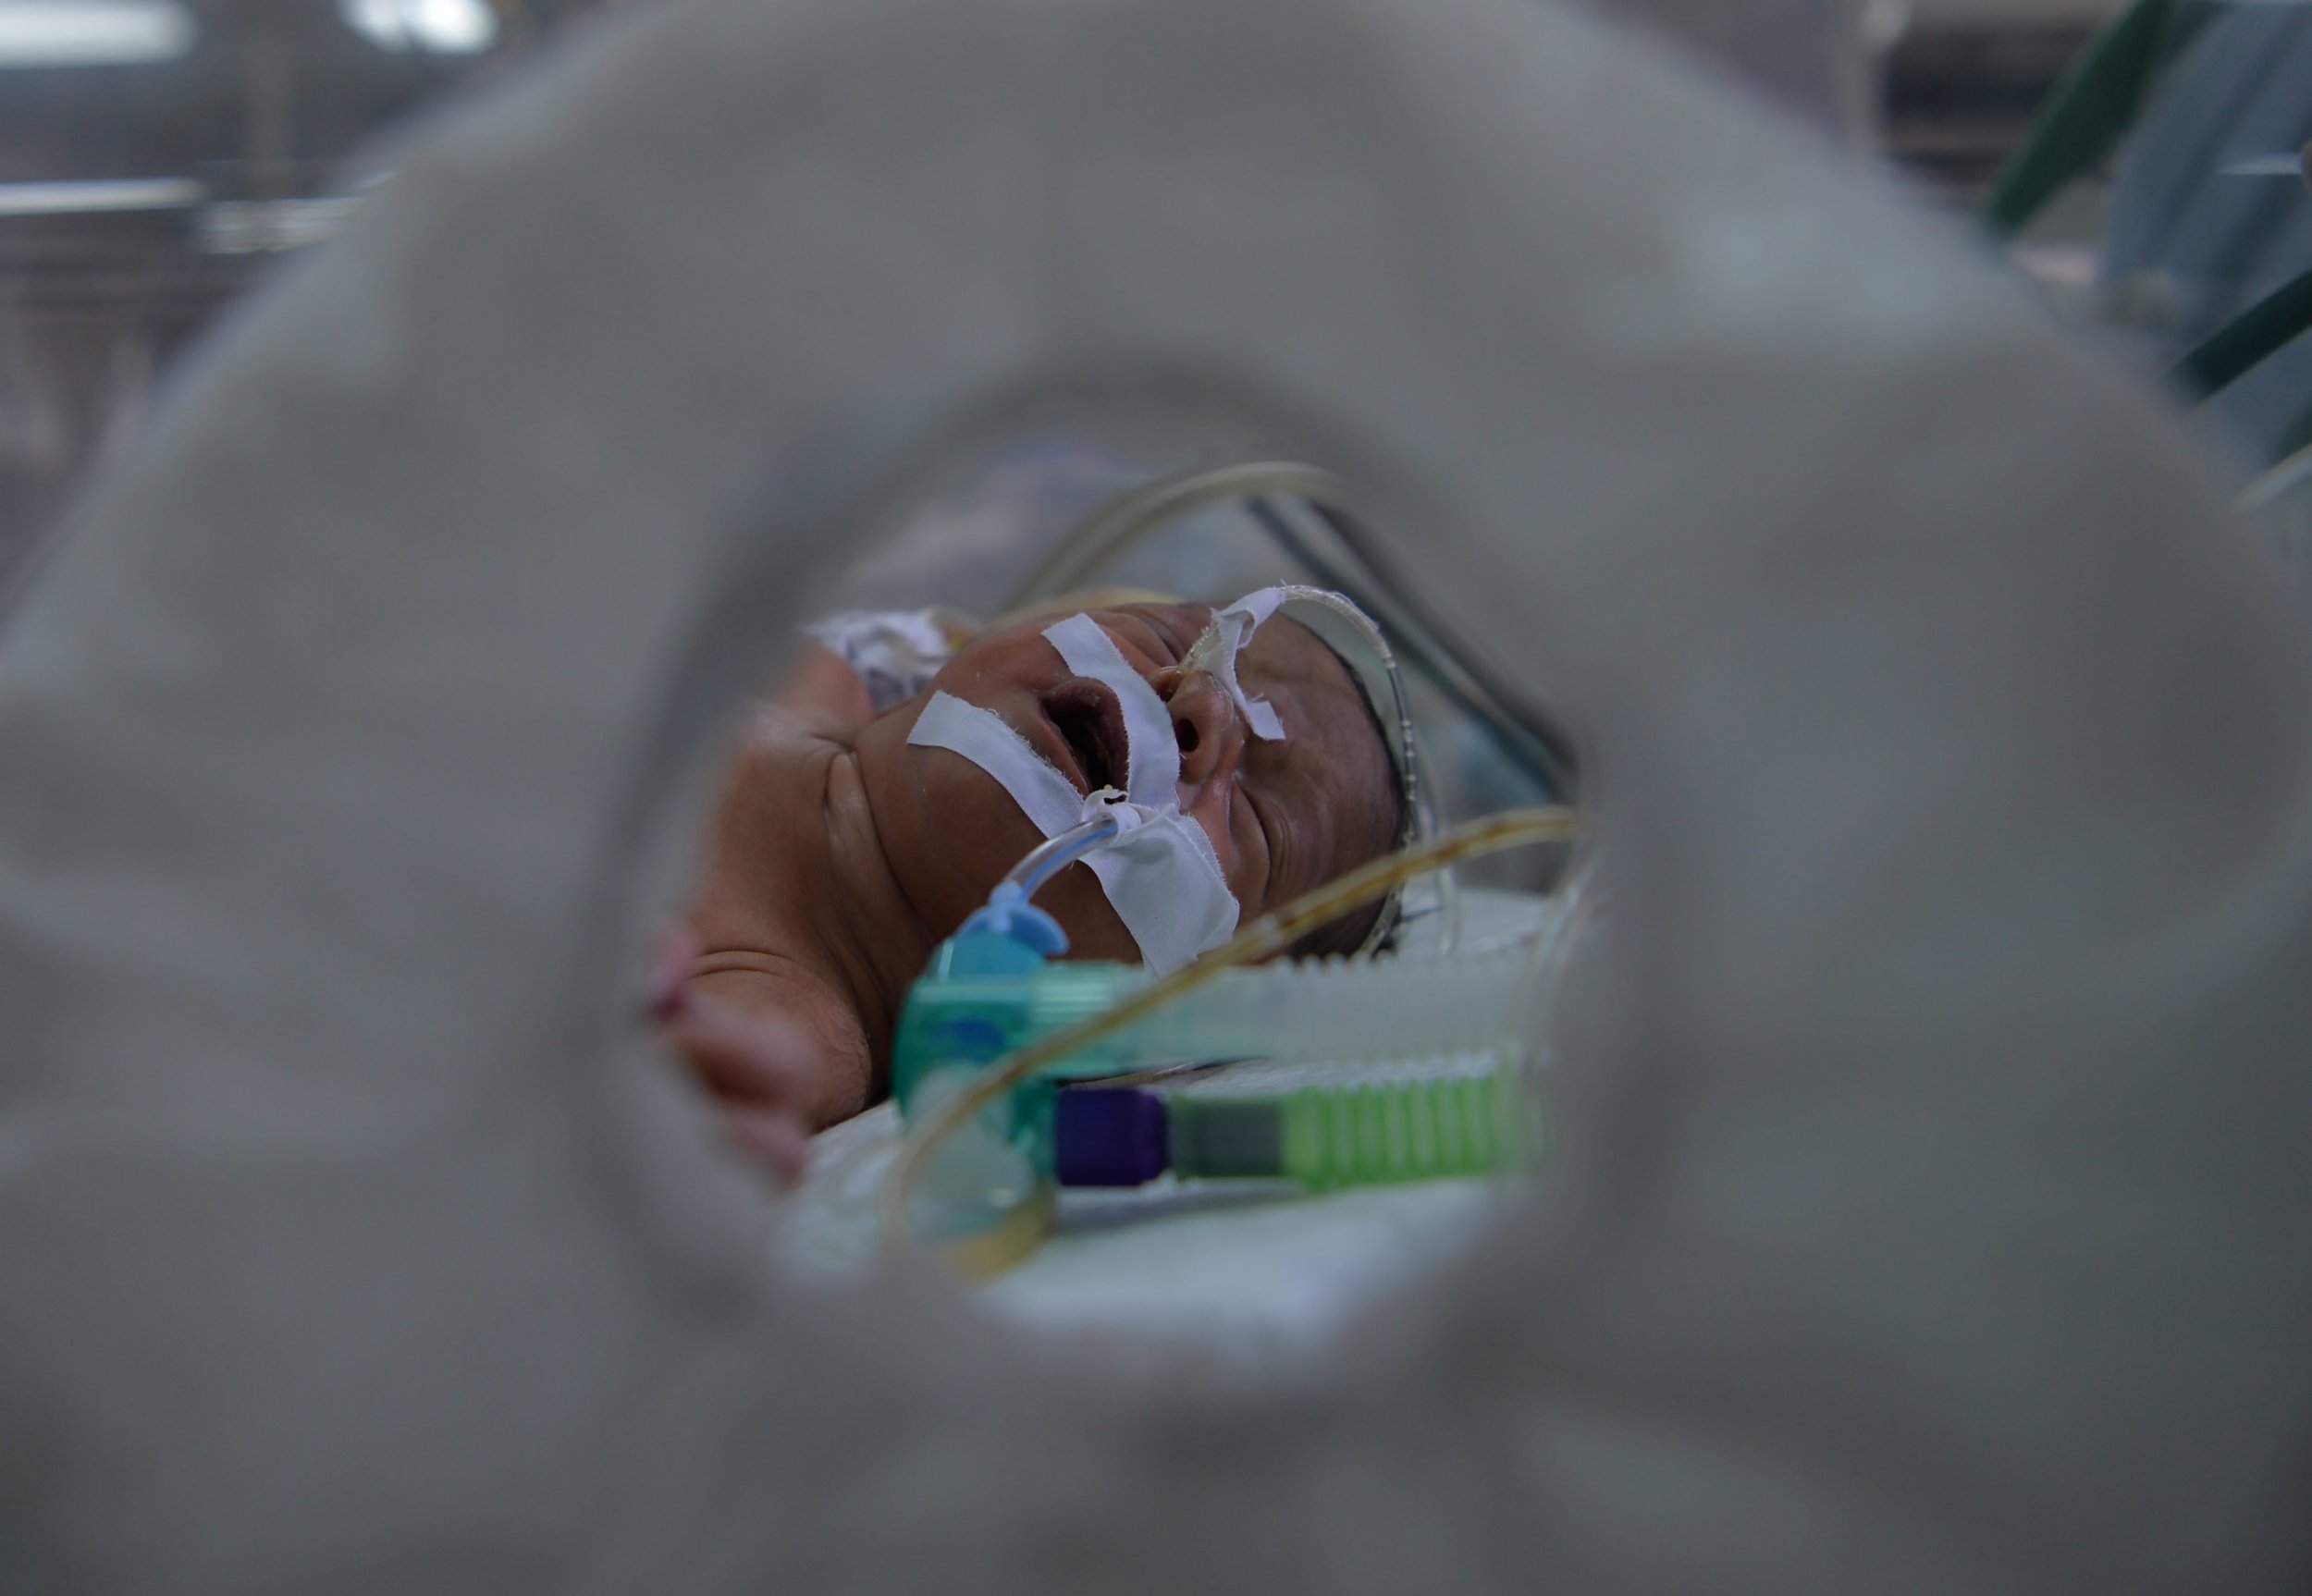 Mothers Of Babies Born Addicted To Drugs Could Lose